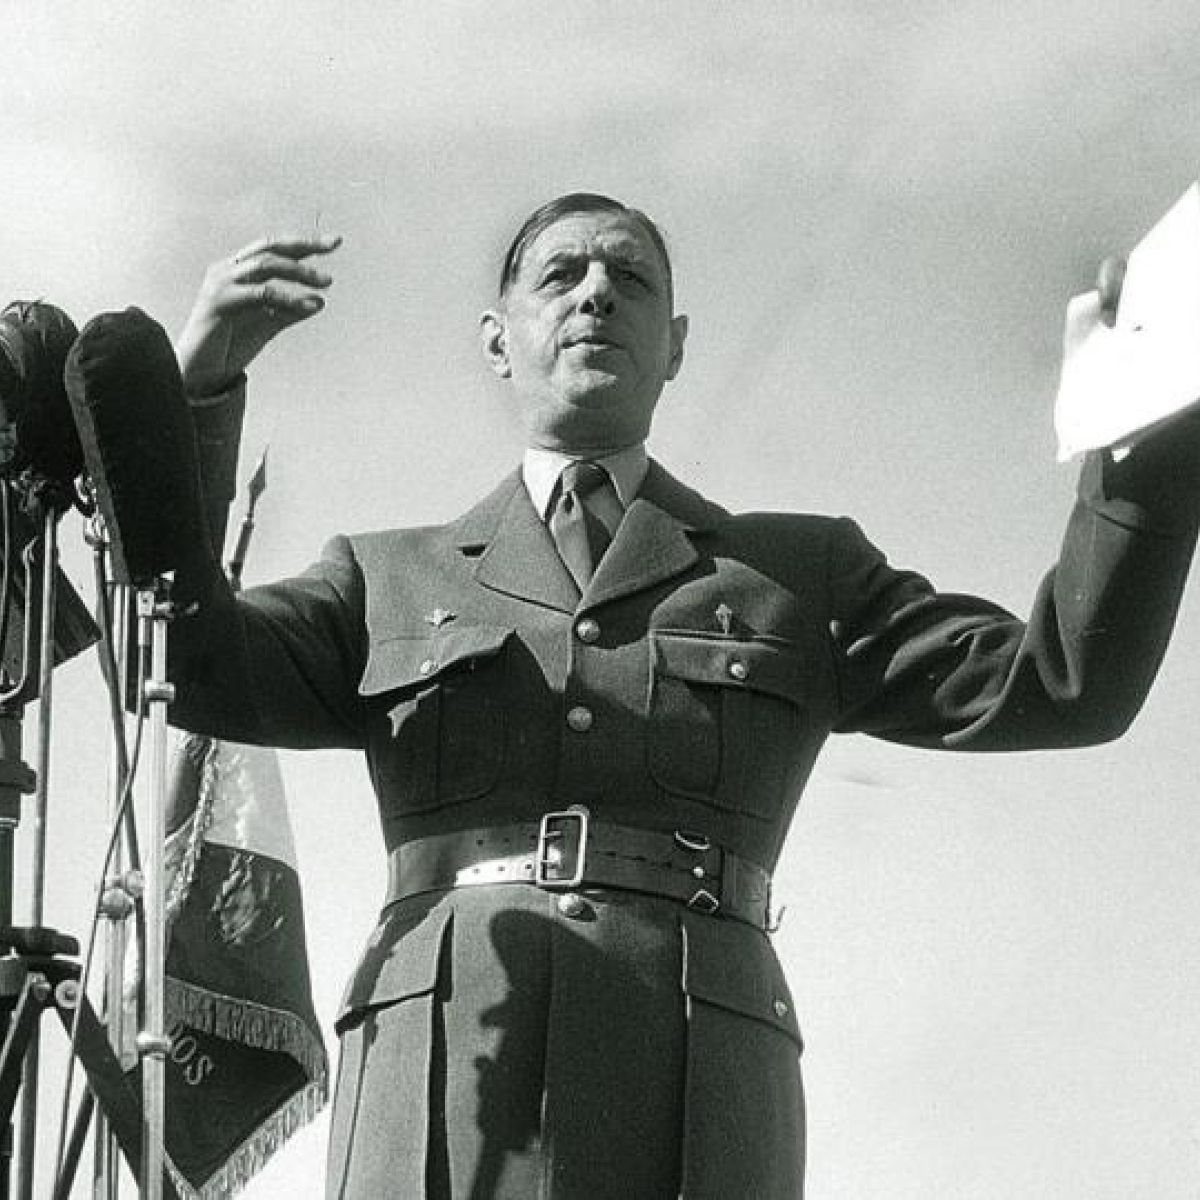 Macron Leads Months Long Homage To Charles De Gaulle De Gaulle